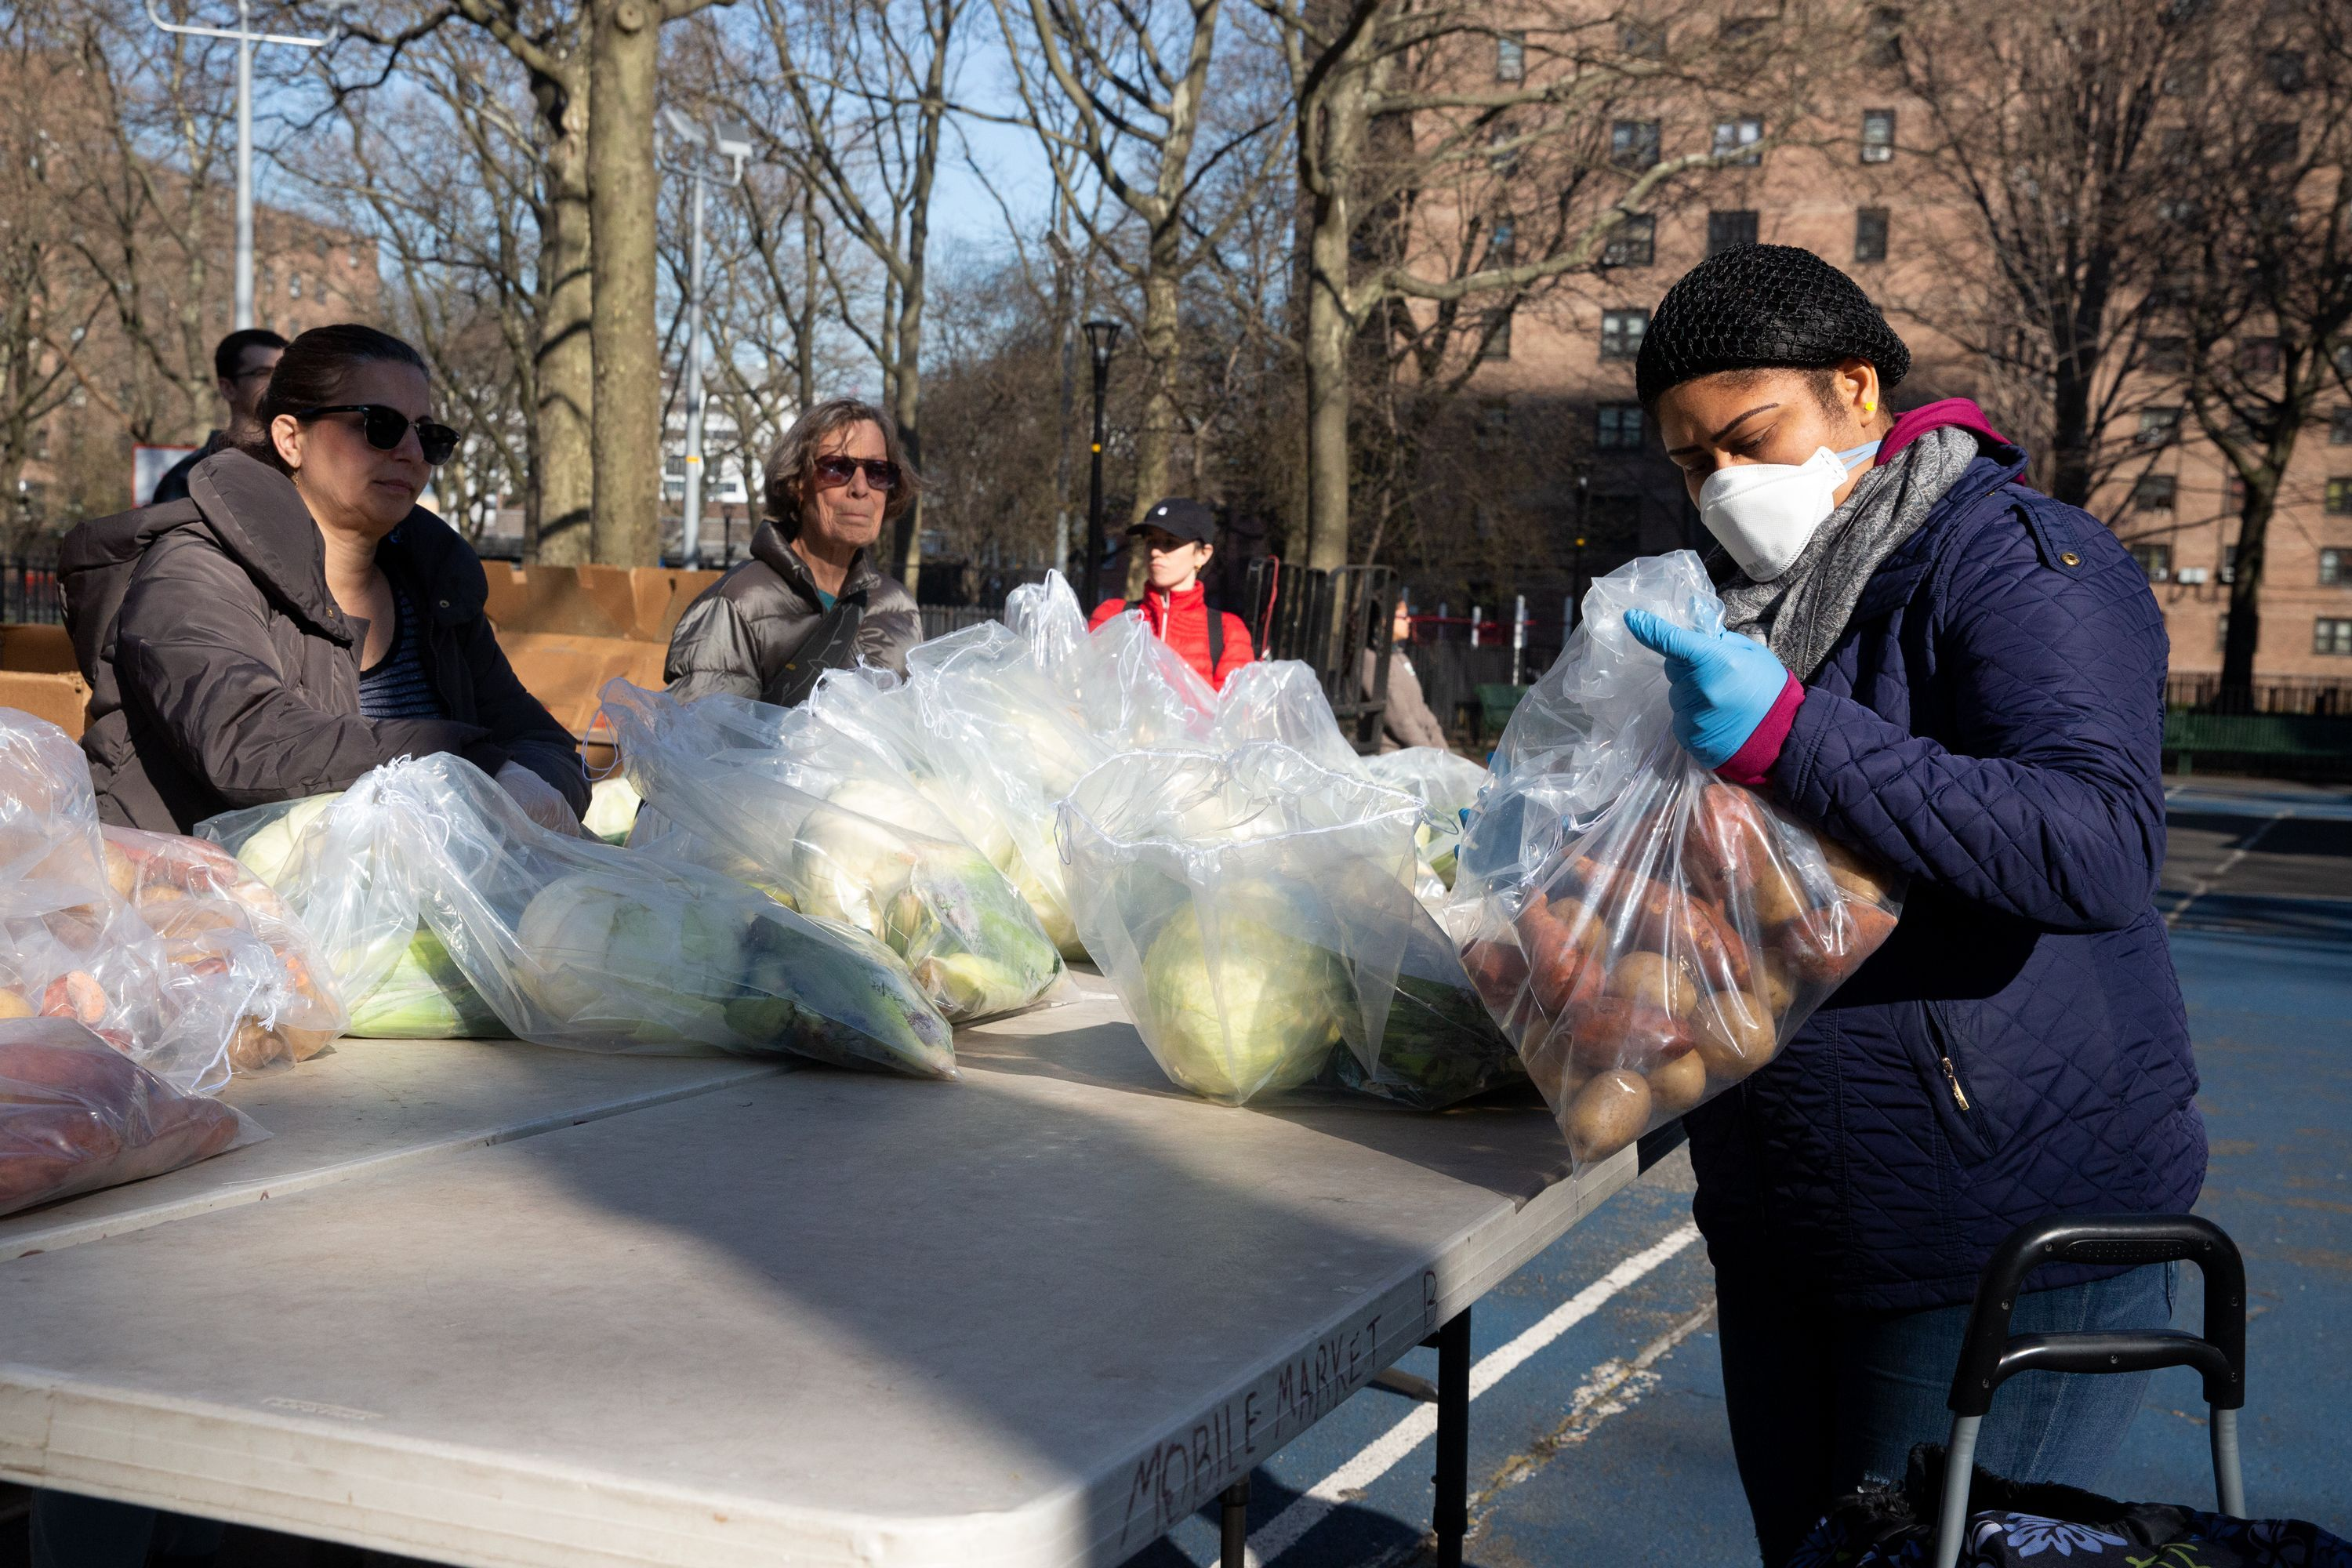 The nonprofit City Harvest set up a food bank at the Tompkins Houses in Bed-Stuy, Brooklyn.